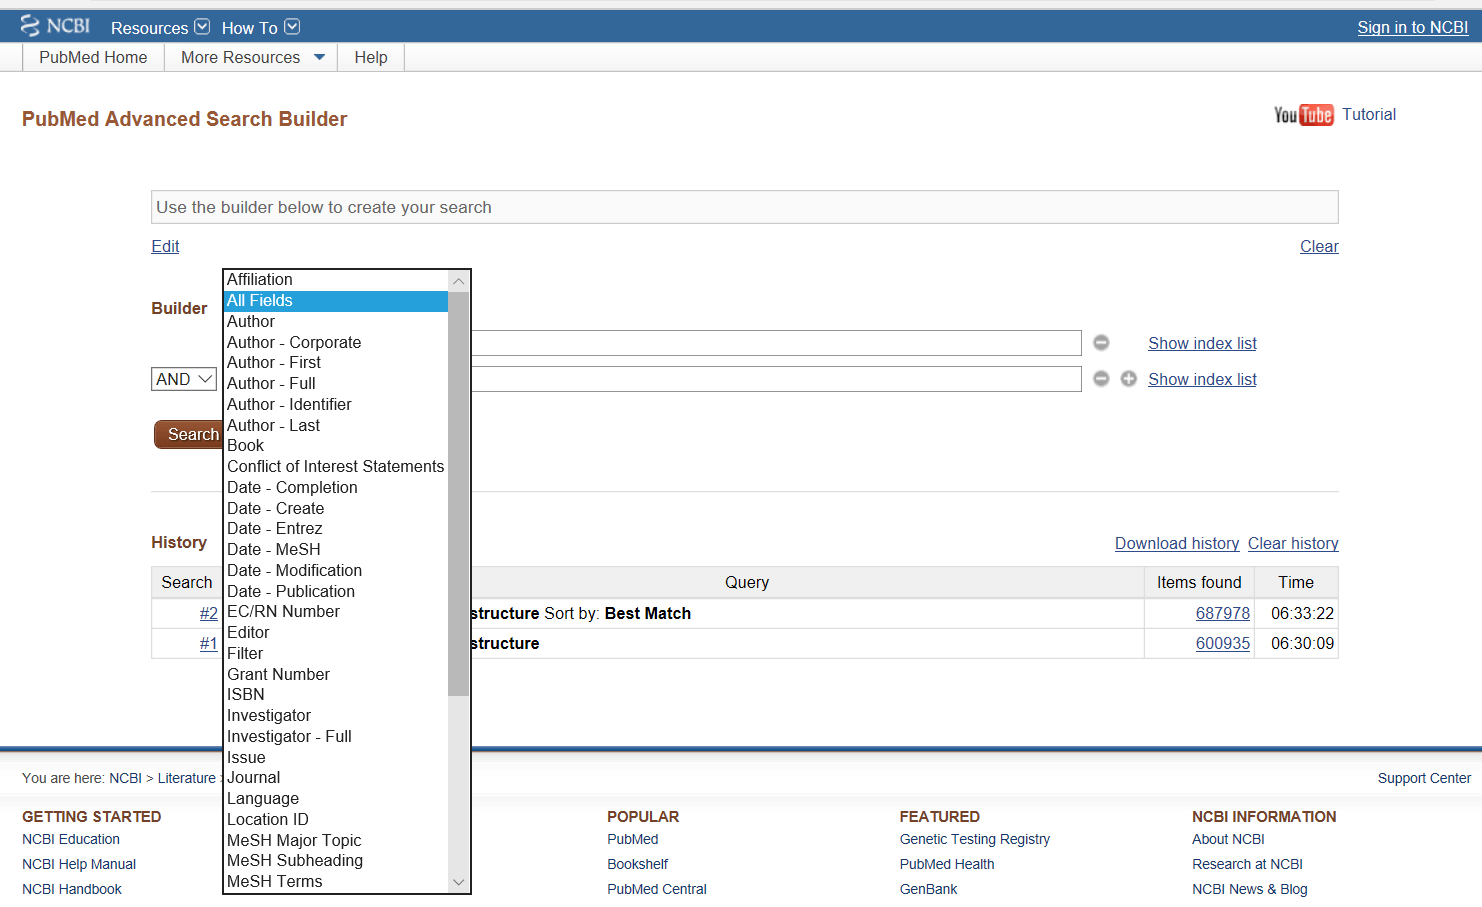 Figure 2. Narrowing a search strategy using the Advanced menu in PubMed